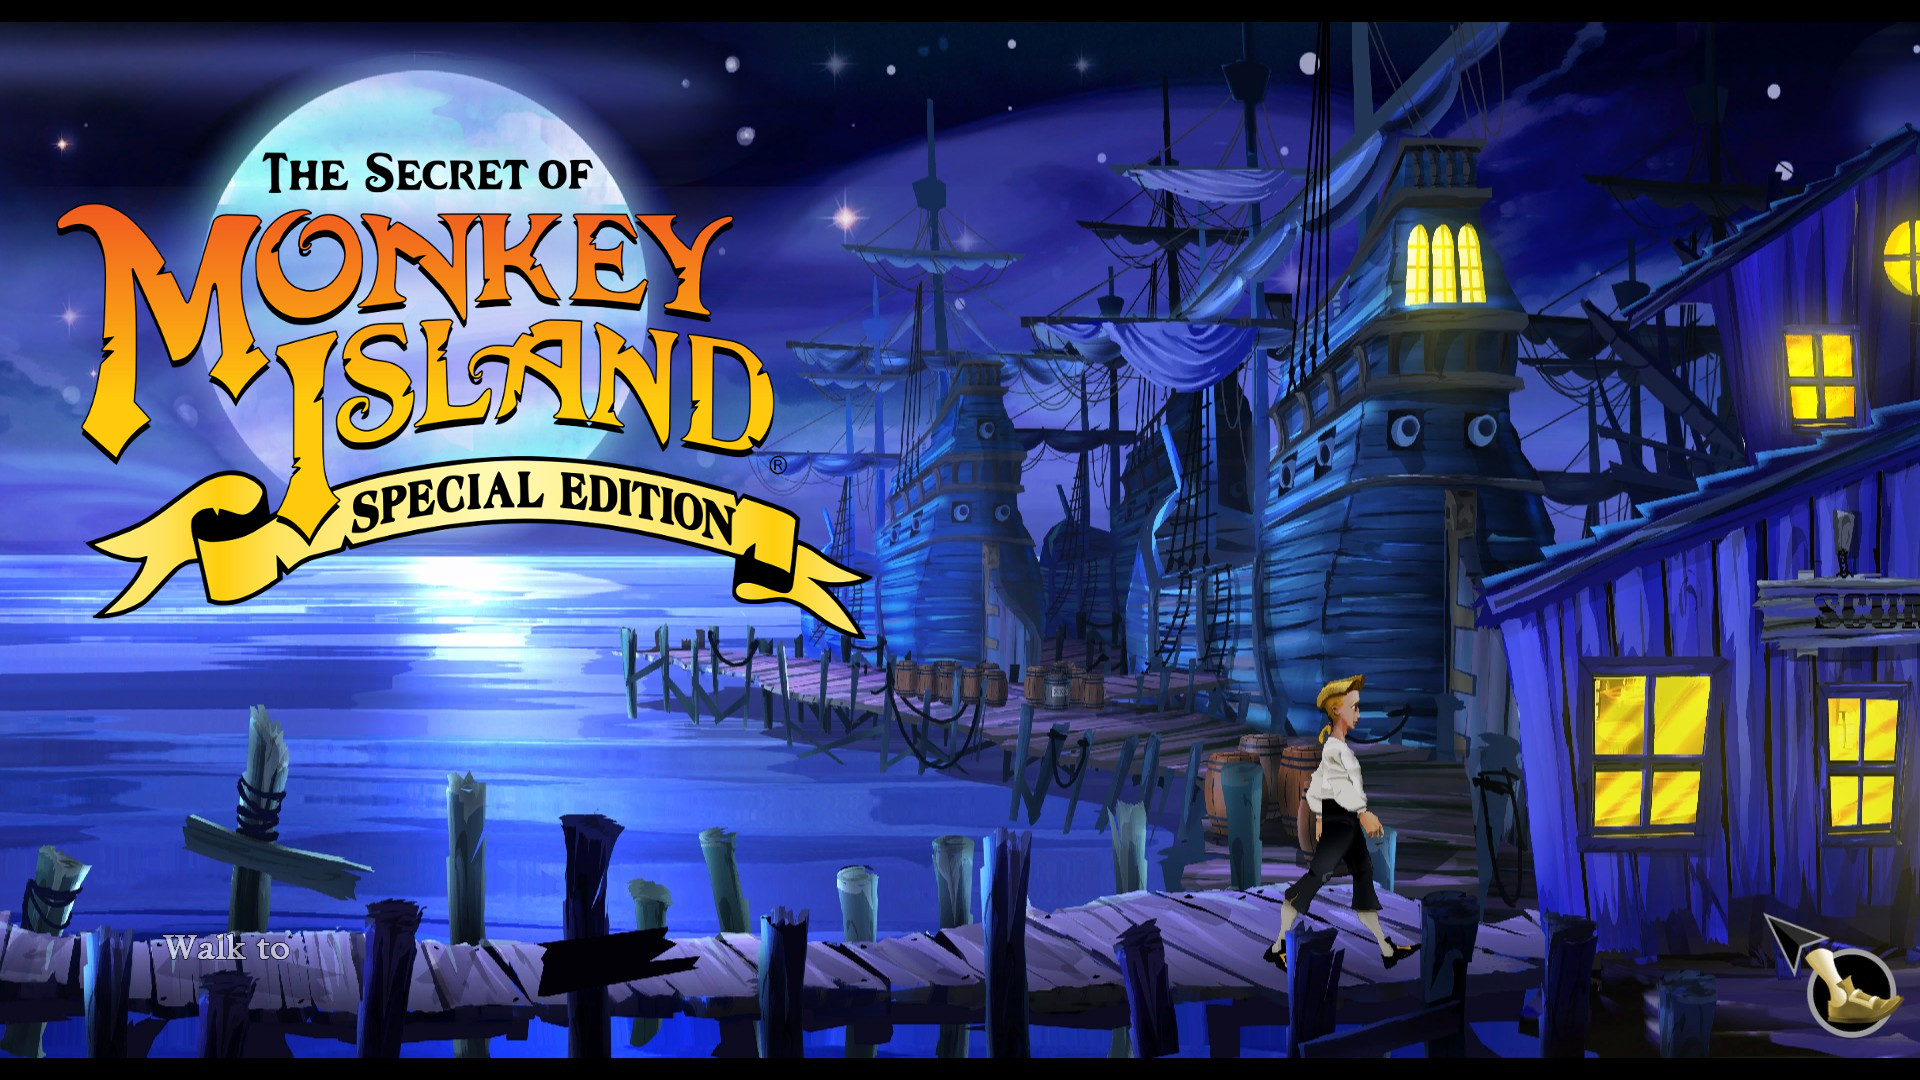 Resultado de imagen de the secret of monkey island